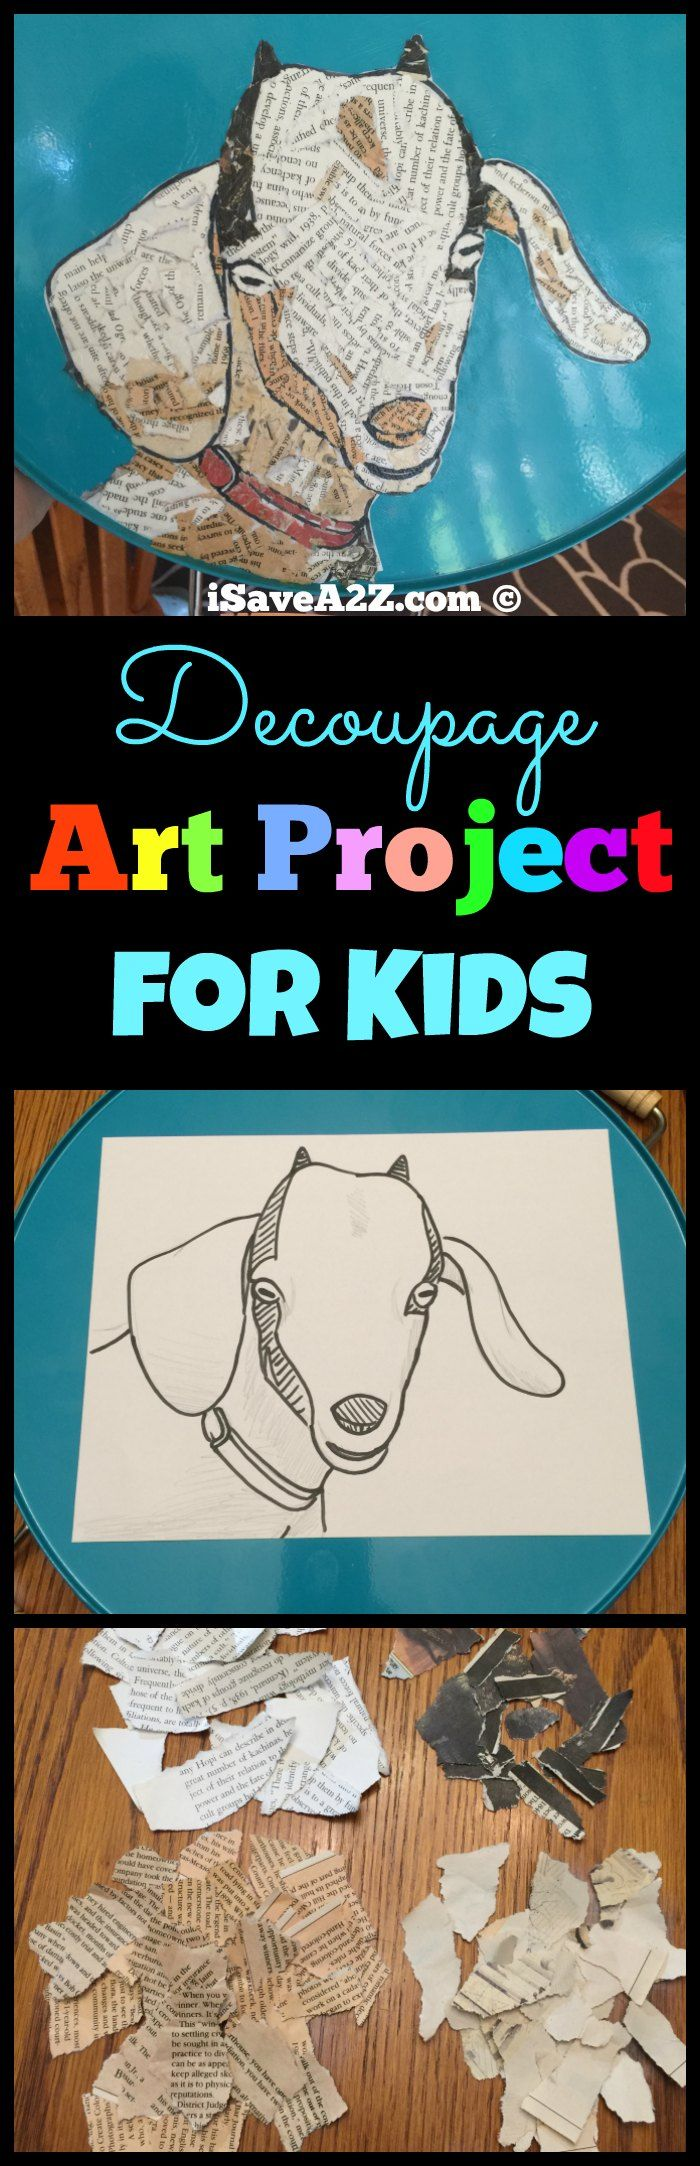 Decoupage Art Project for Kids I just have to share this decoupage art project that is perfect for kids!  We used a goat drawing in the project but your child can use their favorite animal or character to make their own art.  It's pretty easy and it will keep them entertained for a fewContinue Reading...